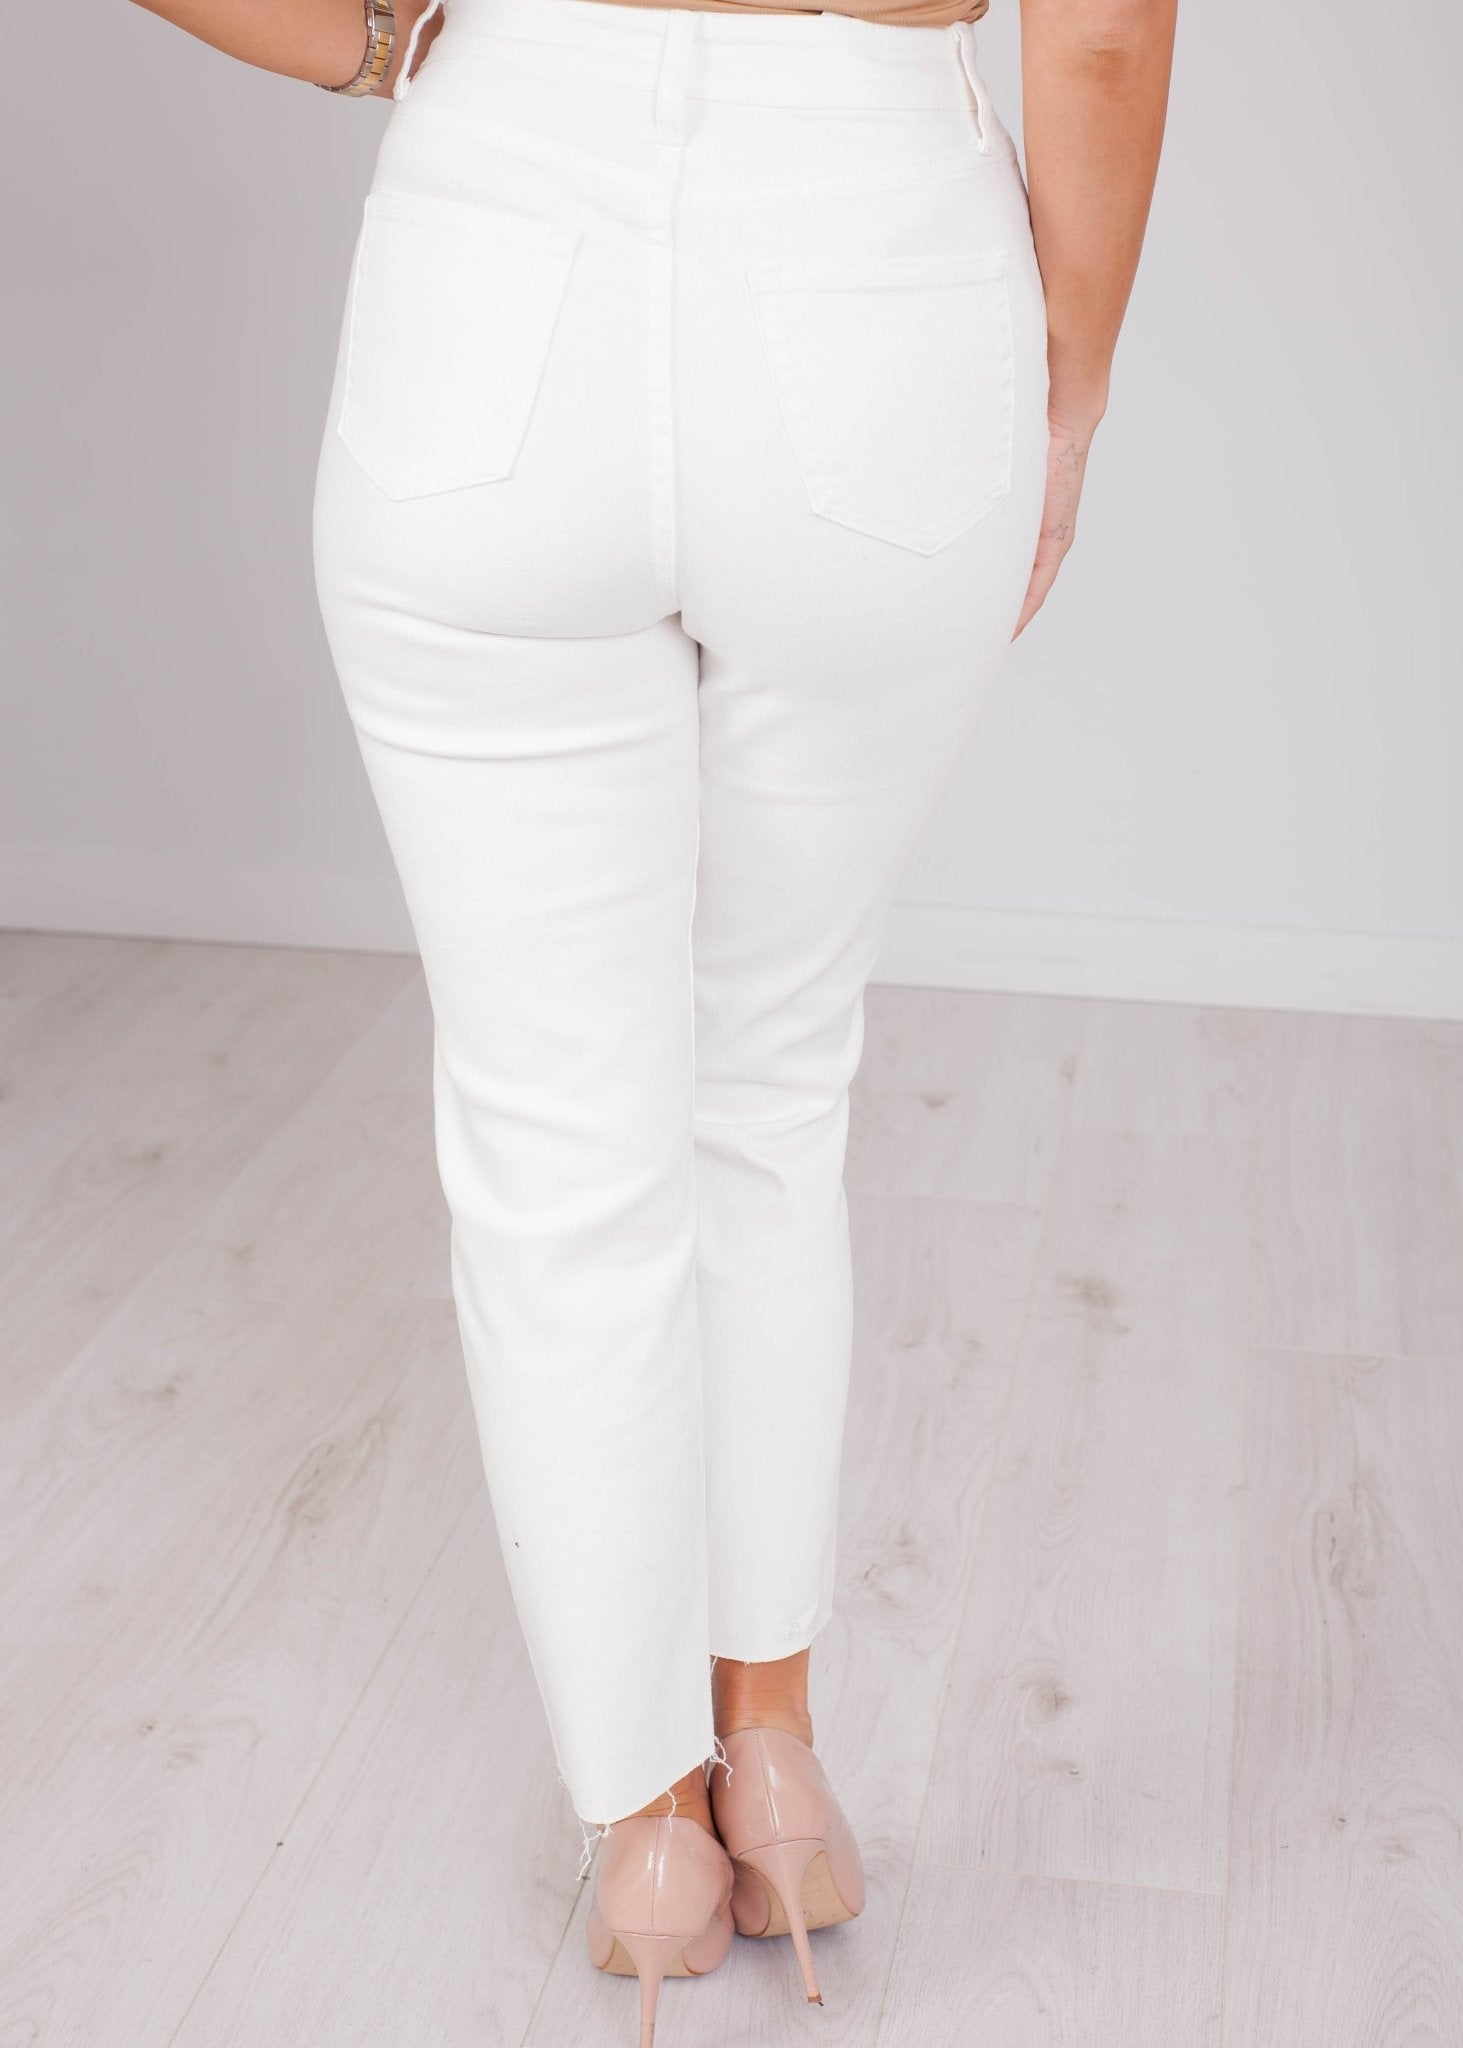 Therese White Unfinished Hem Jeans - The Walk in Wardrobe